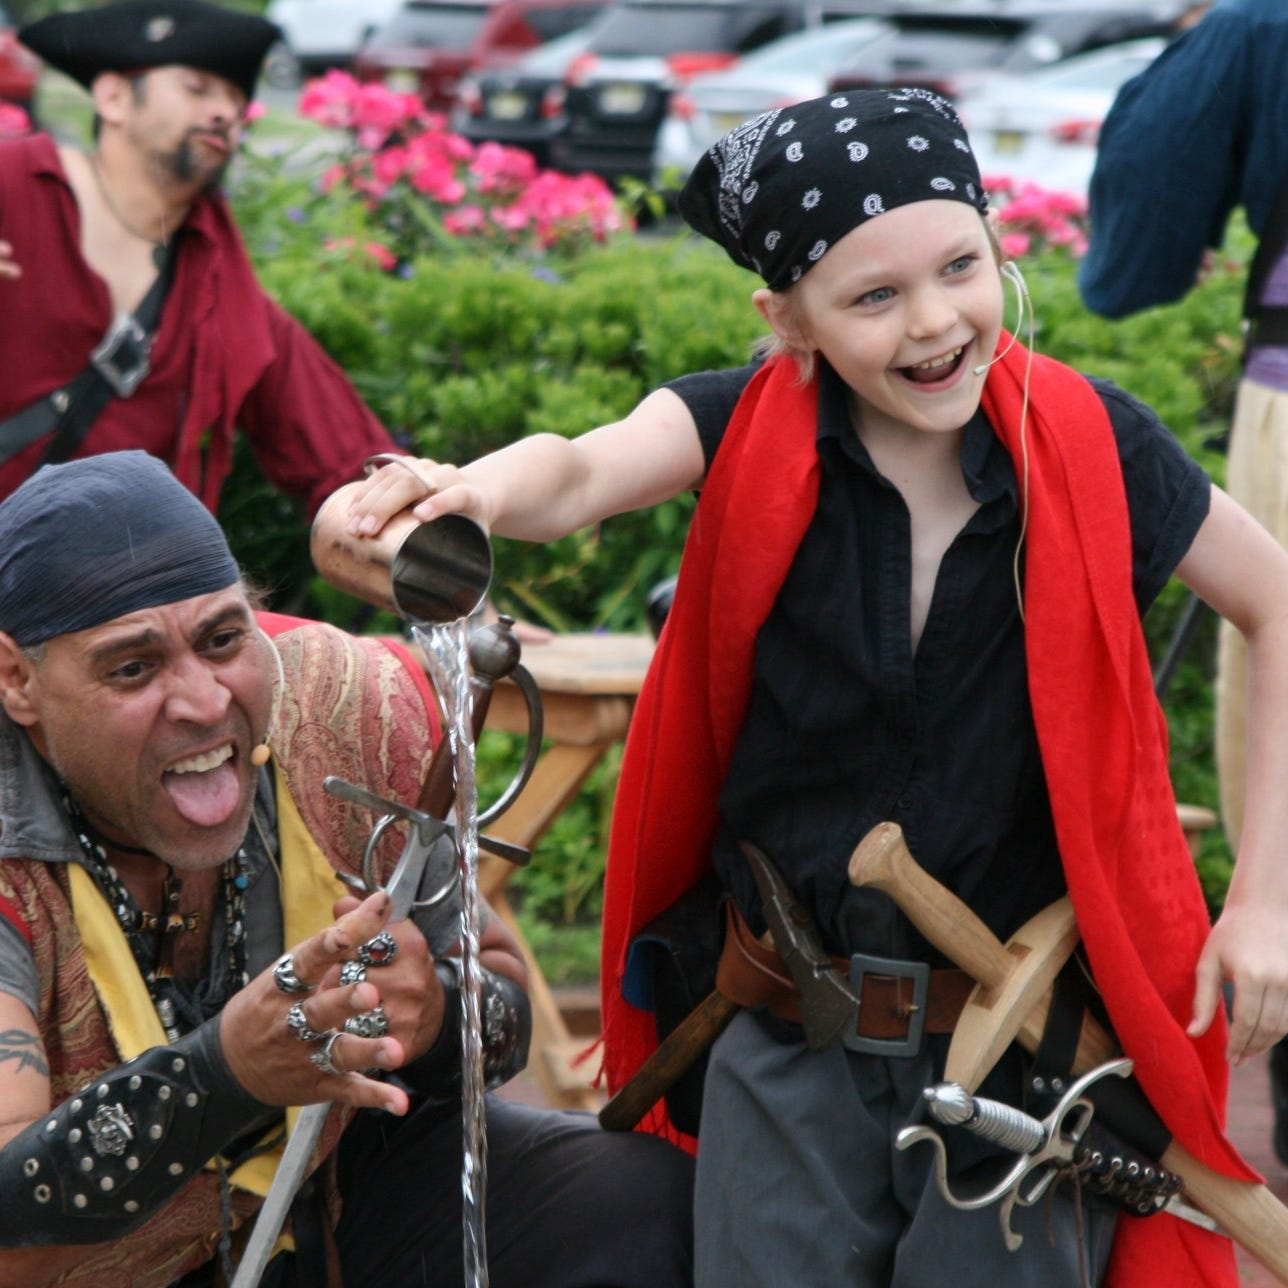 Plunder some fun with the pirates at Milton's Zombie Fest